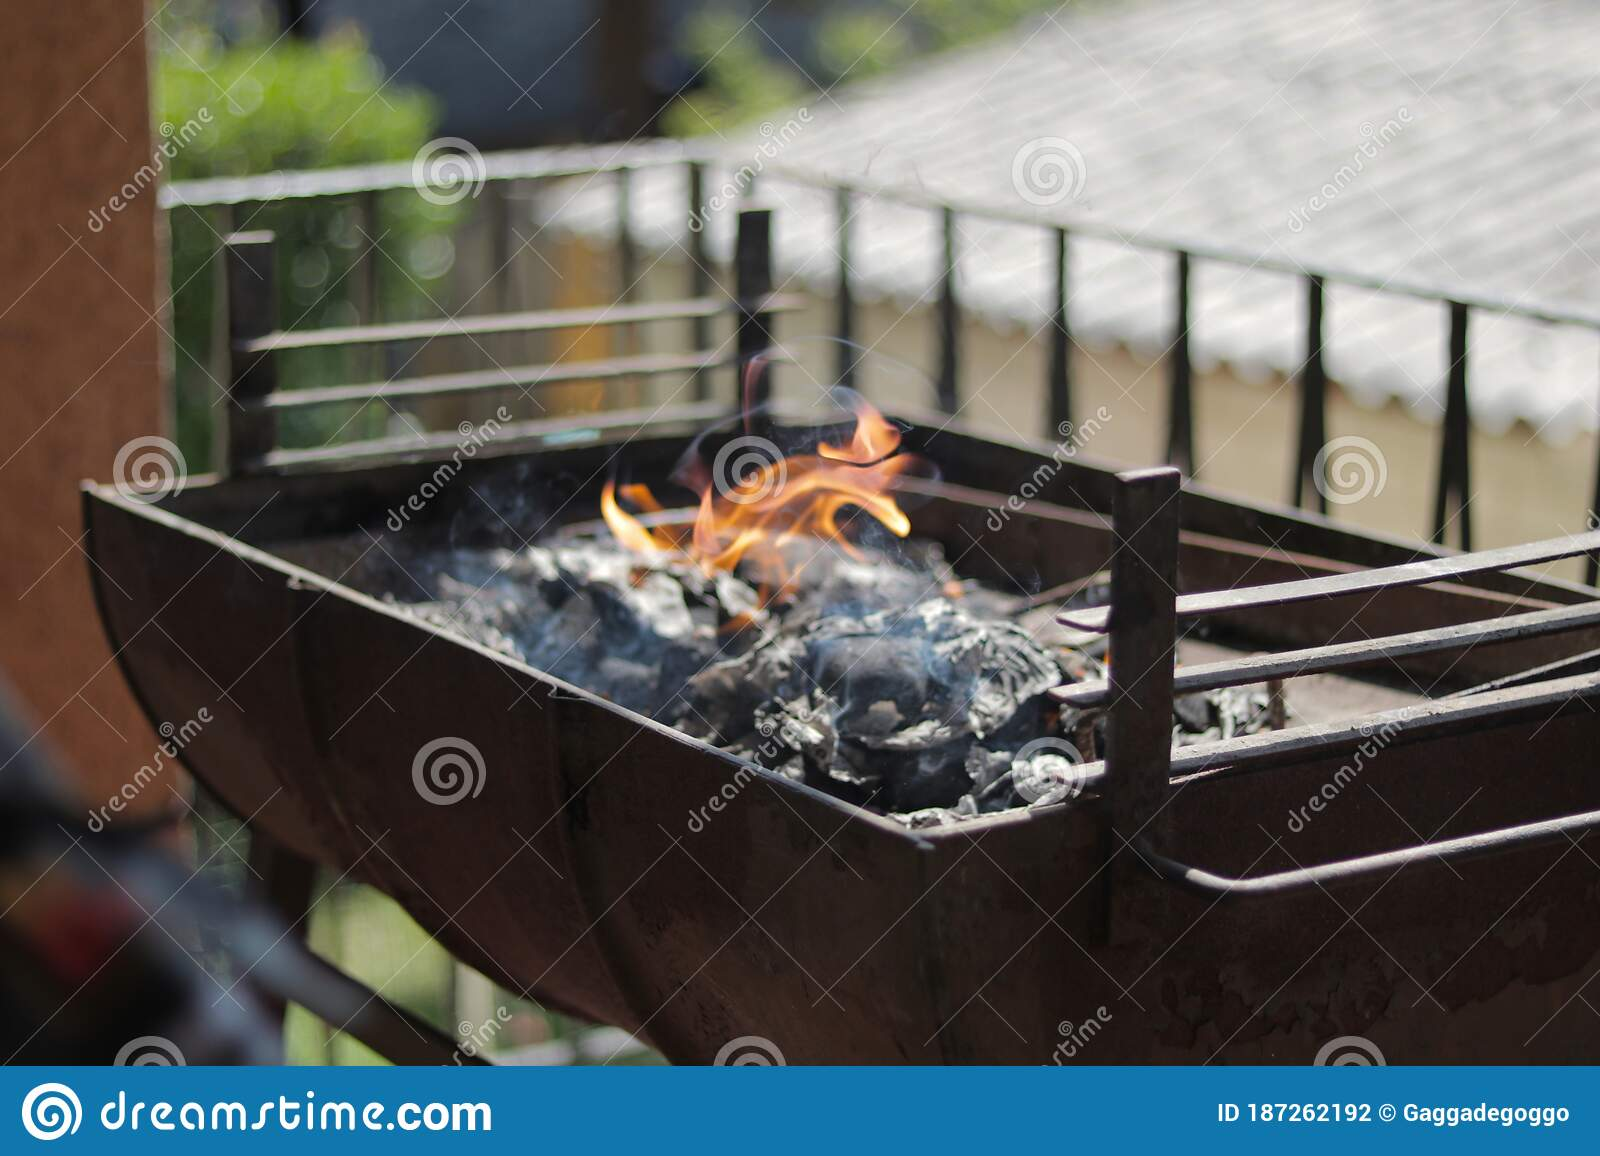 Charcoal Ashes Burning Preparing Barbecue Stock Photo Image Of Charcoal Cook 187262192